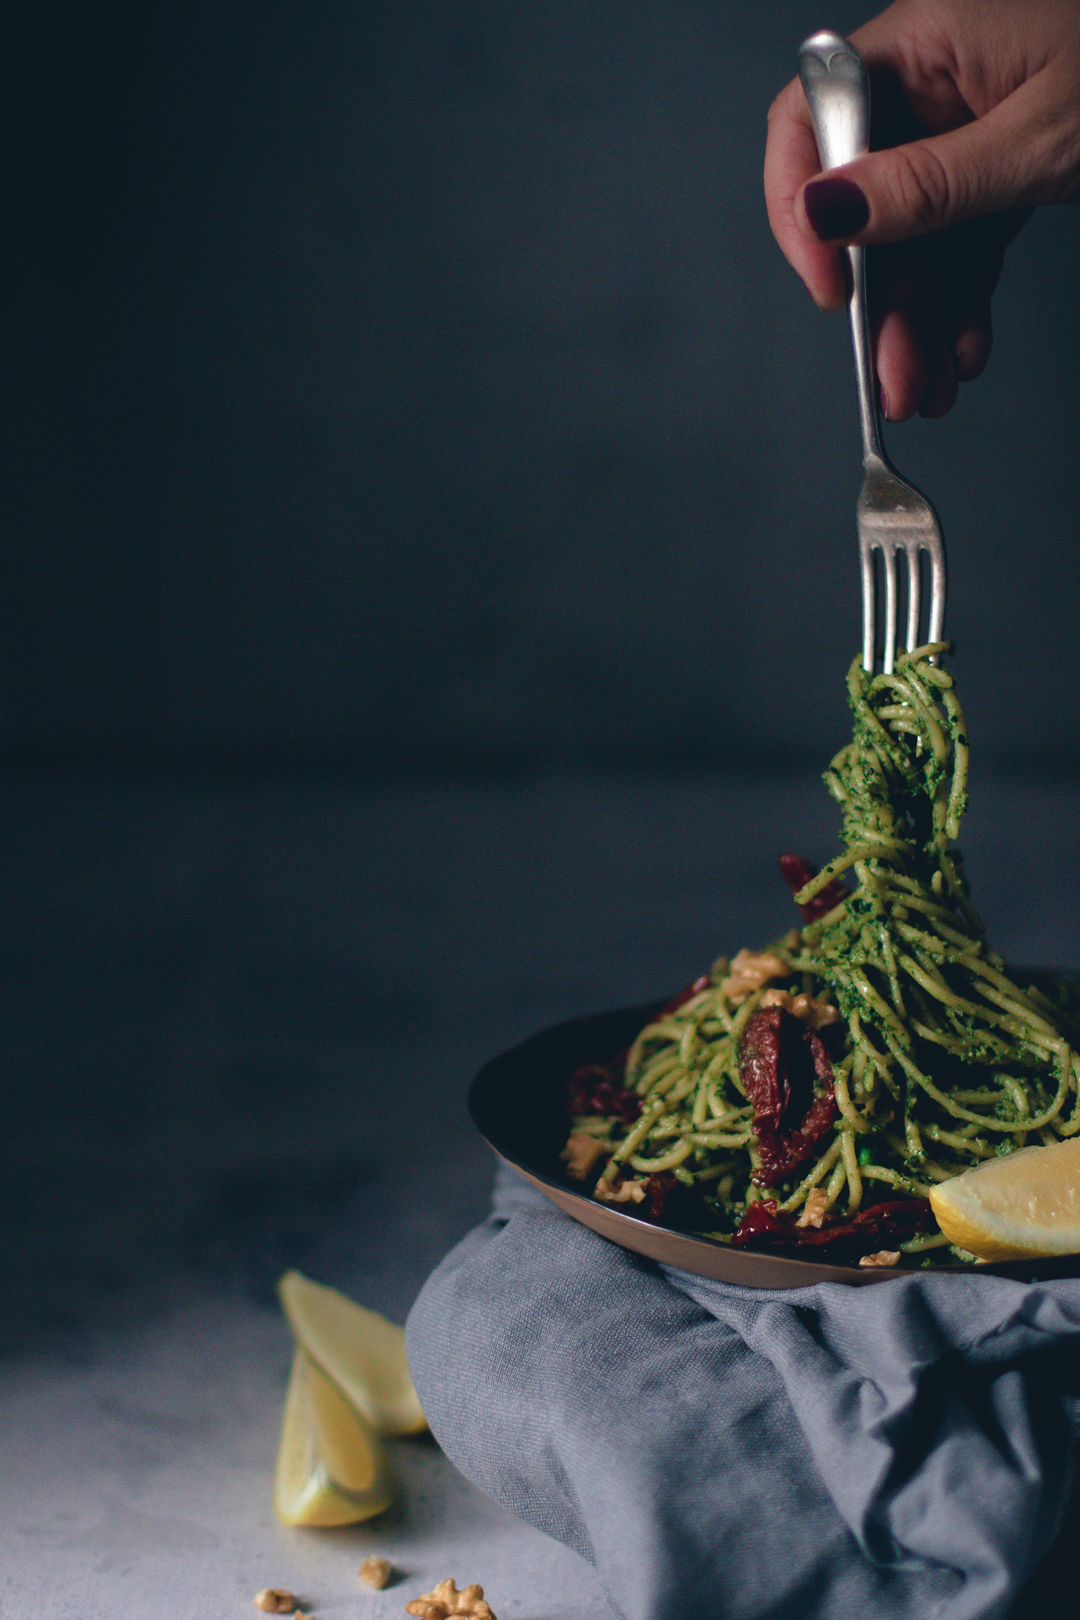 walnut spinach pesto spaghetti - wee scottish whisk.jpg